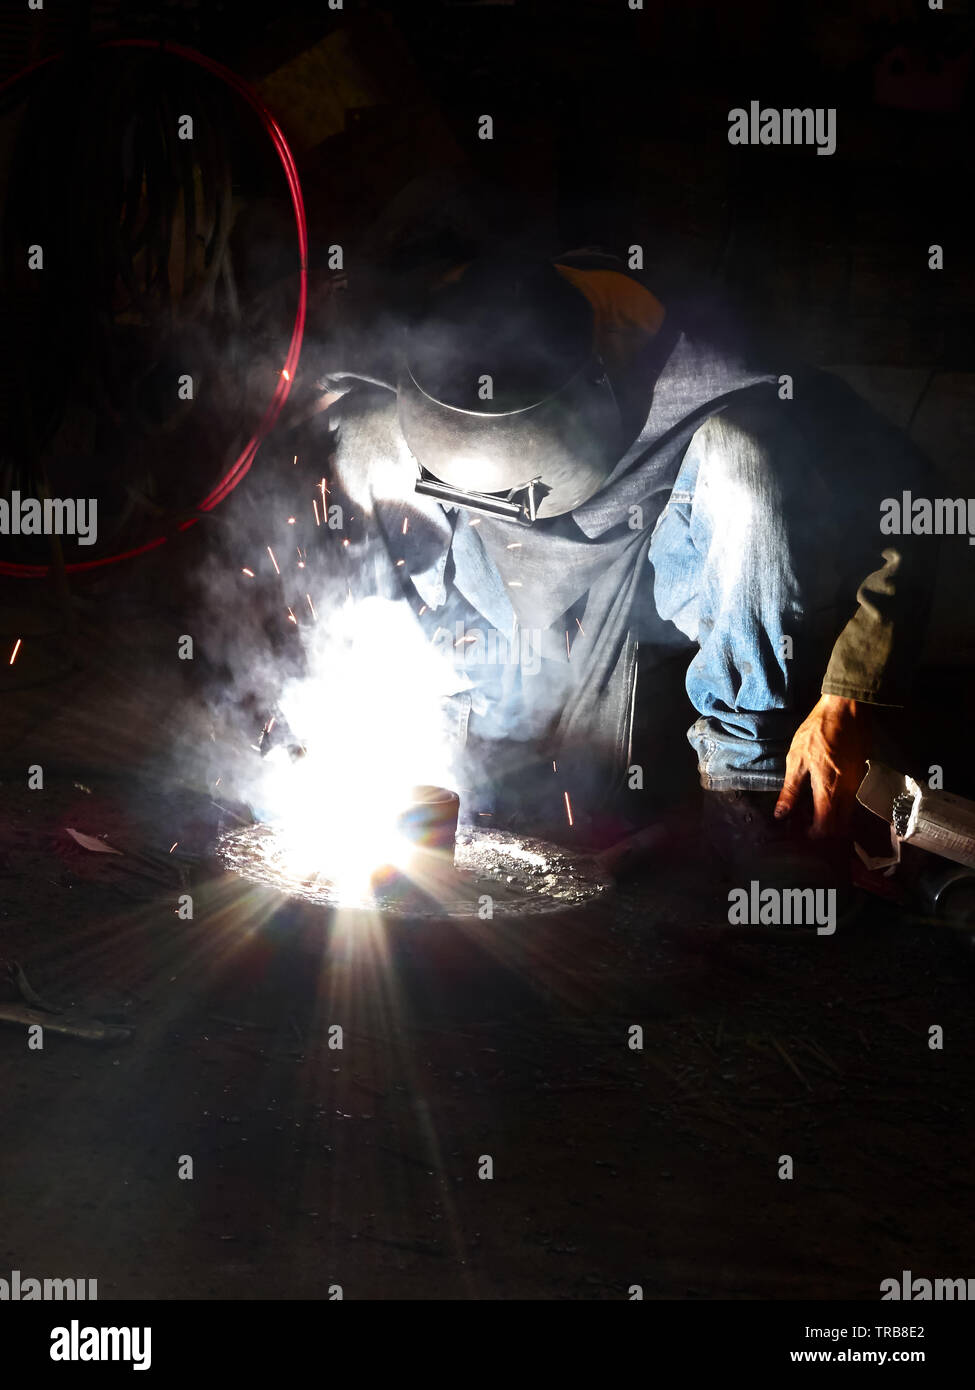 Close-up of a man dressed in jeans doing a welding job with sparks flying around, seen in the Philippines Stock Photo